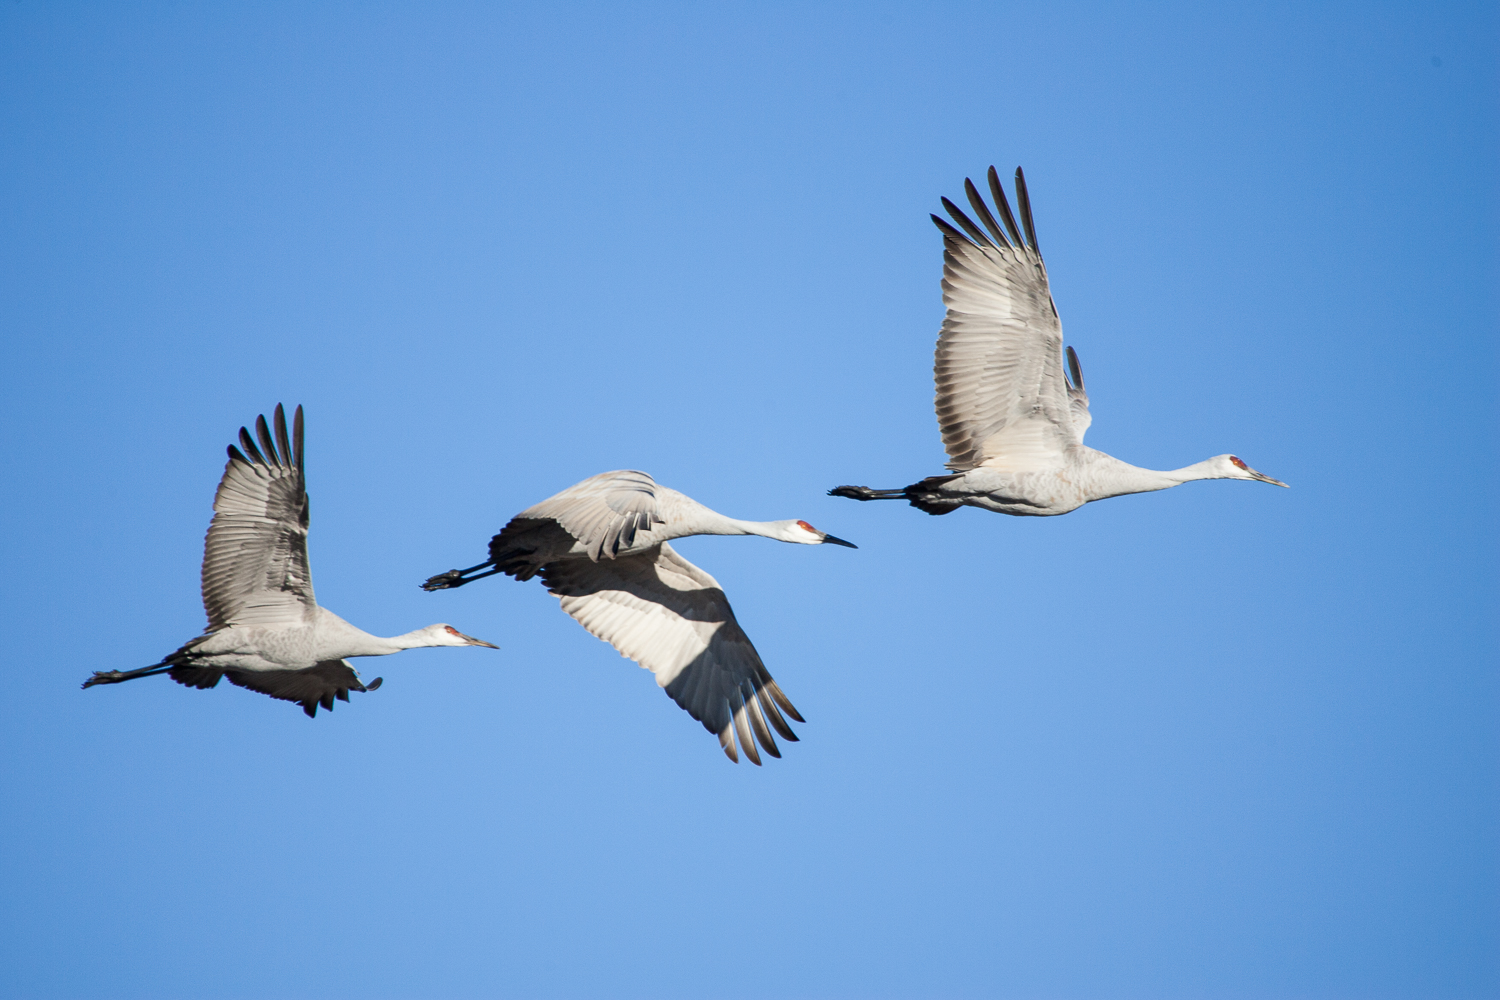 Sandhill Cranes in Flight (Bosque NWR, New Mexico)